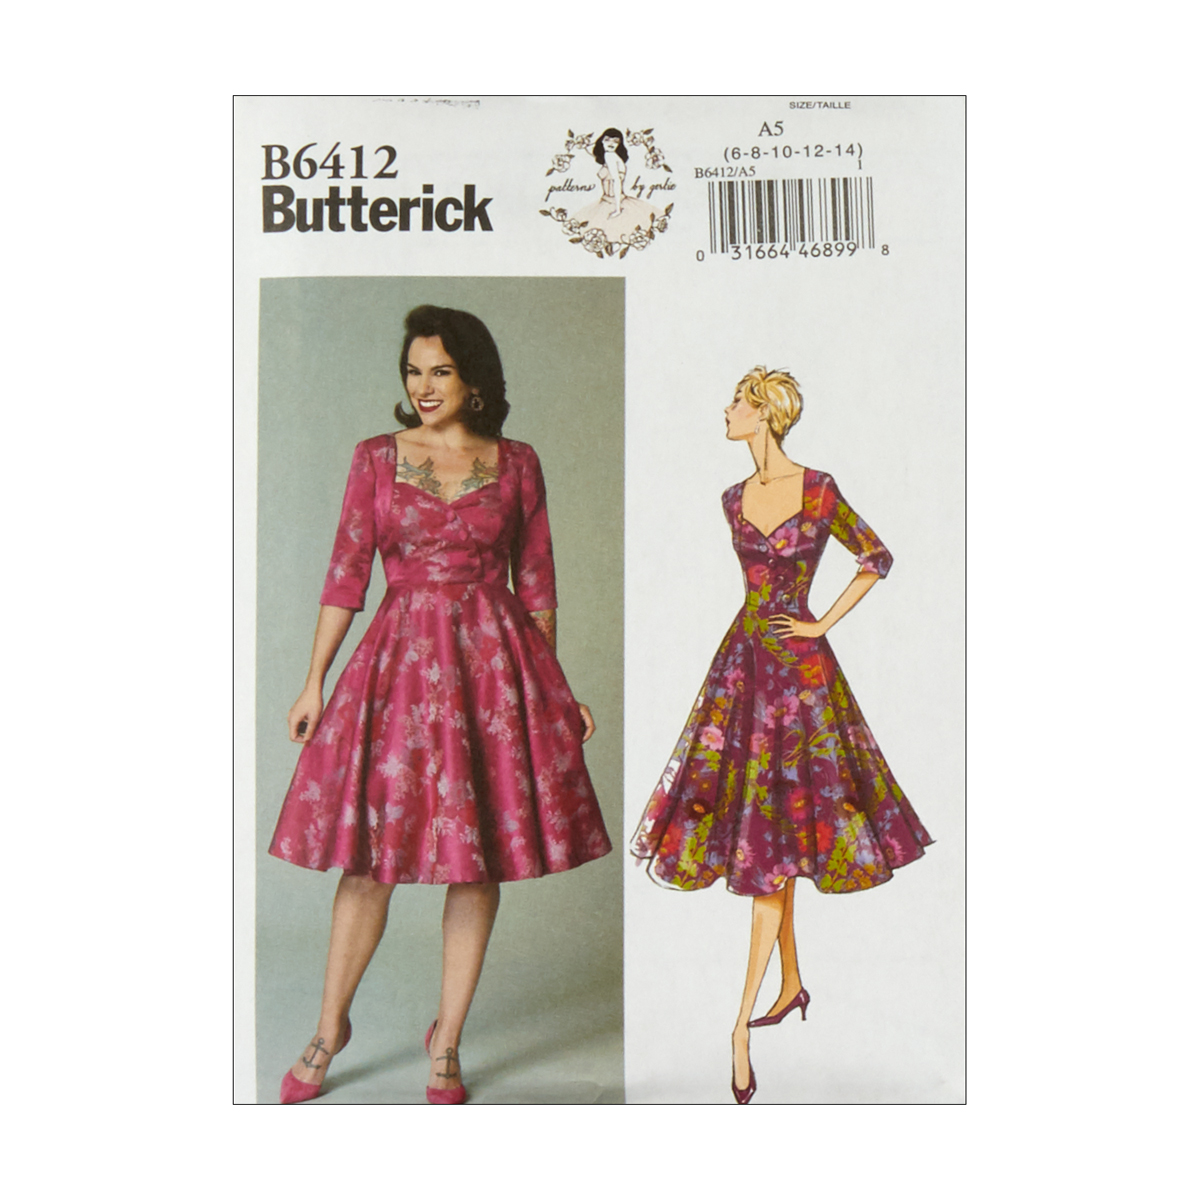 1950s Fabrics & Colors in Fashion Butterick B6412 Patterns by Gertie Sweetheart-Neckline Full-Skirted Dress A5 Sizes 6-14 $11.97 AT vintagedancer.com